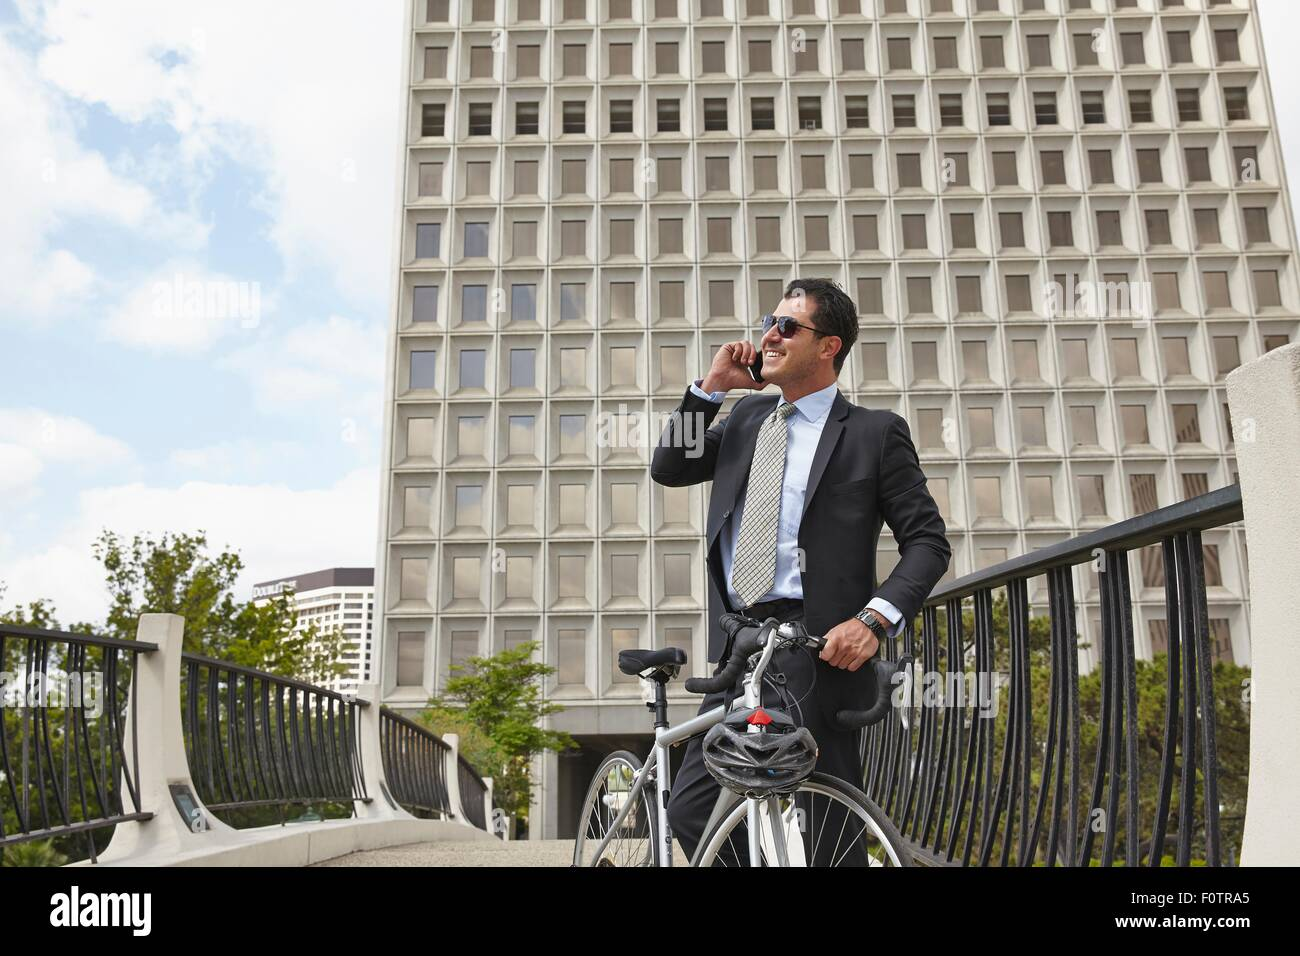 Mid adult business man holding bicycle, making telephone call using smartphone, wearing sunglasses - Stock Image